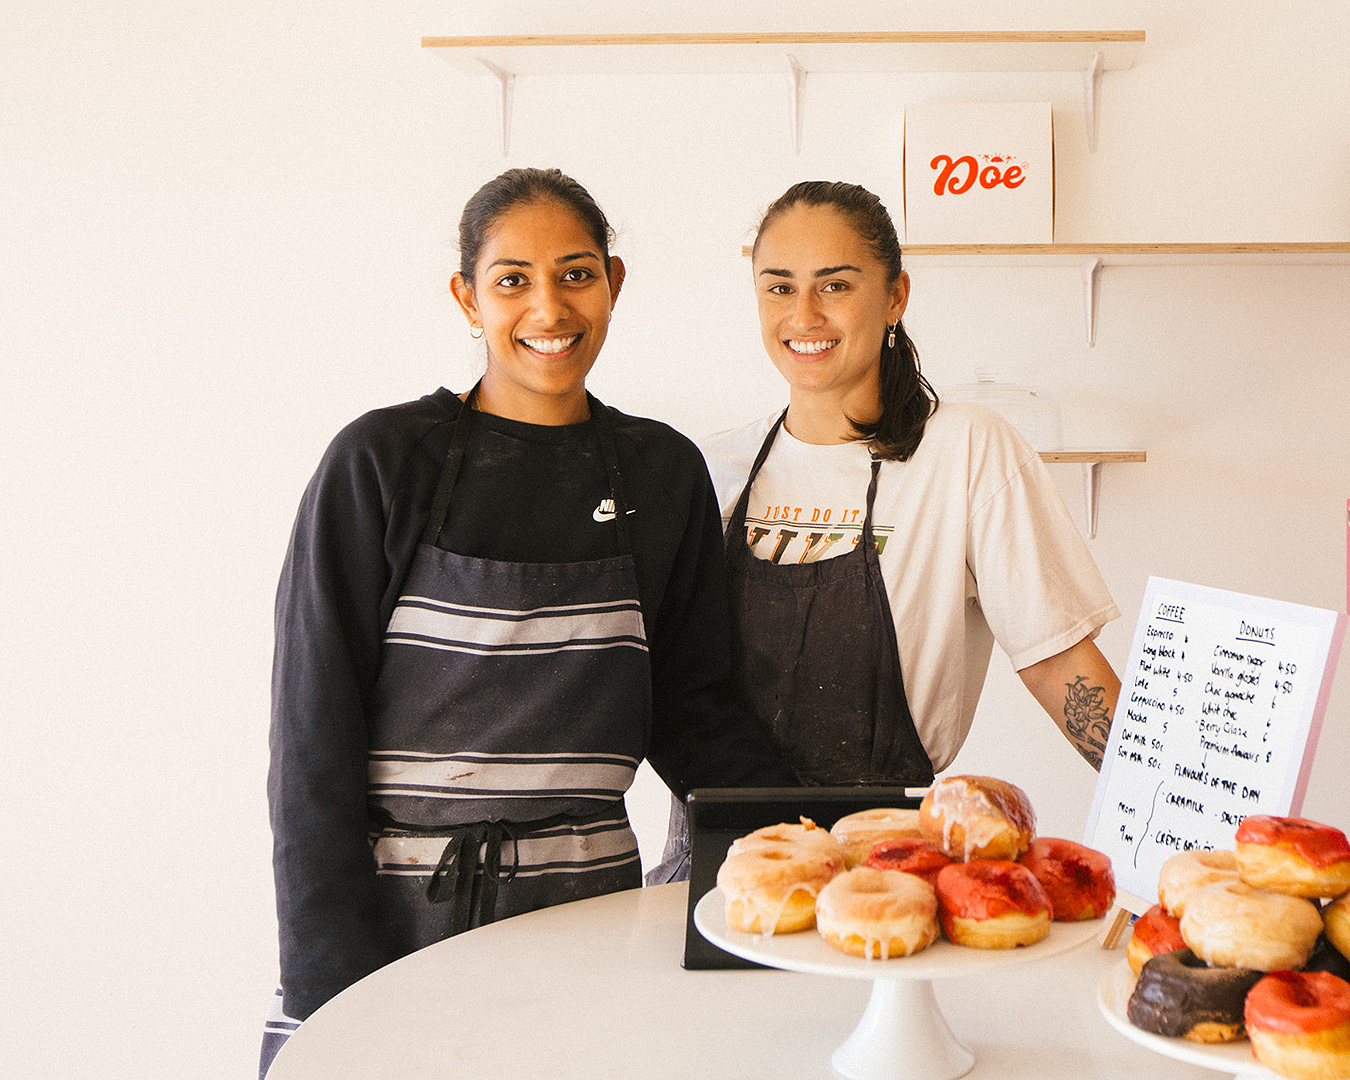 Shenine and Grace from Doe Donuts in their wonderful wee store.